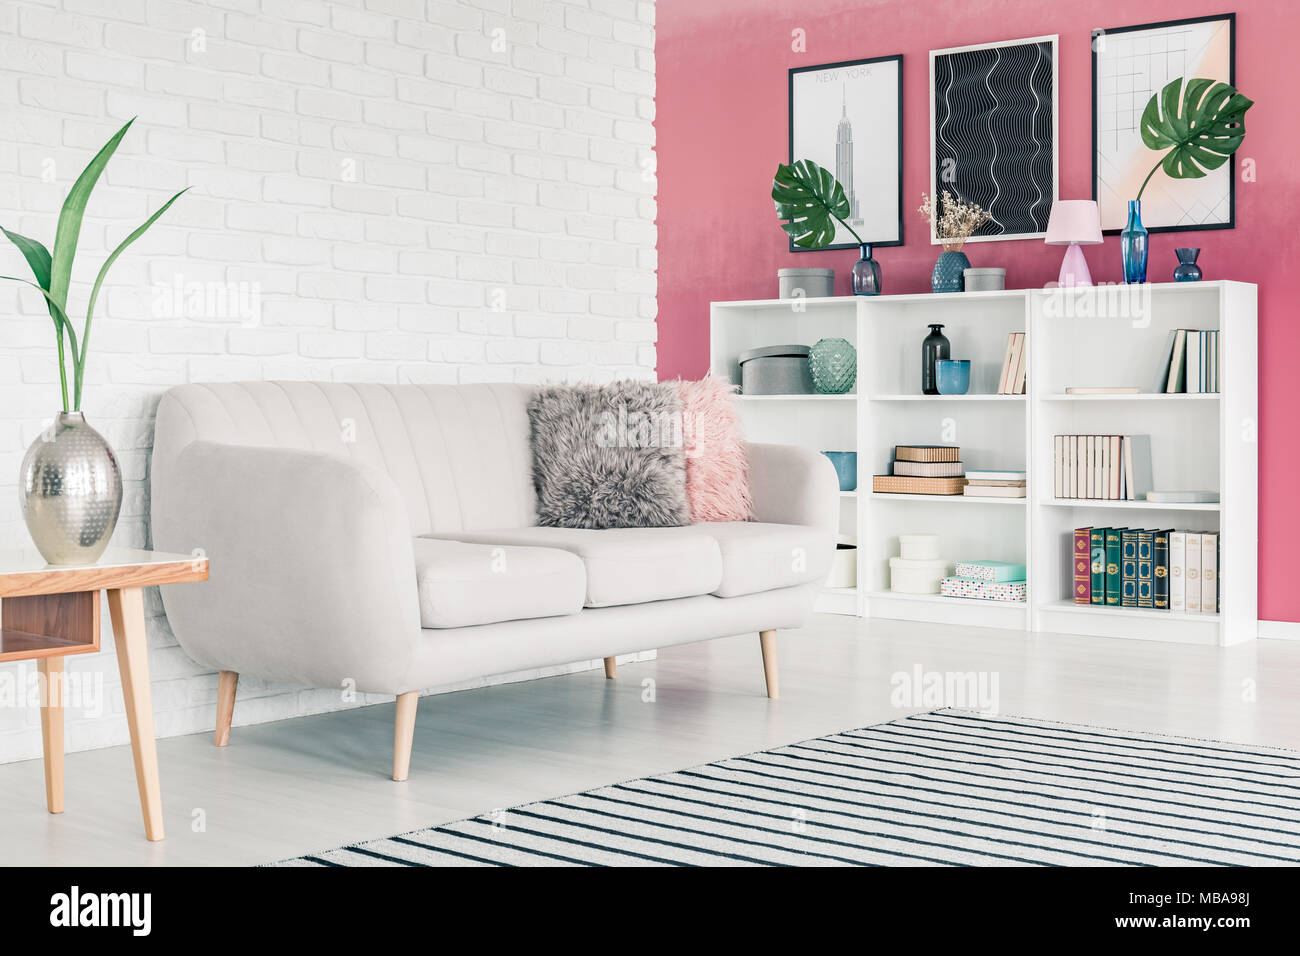 brick living room furniture. k white sofa in pink living room interior with white brick wall striped rug  posters and bookcase books decorations